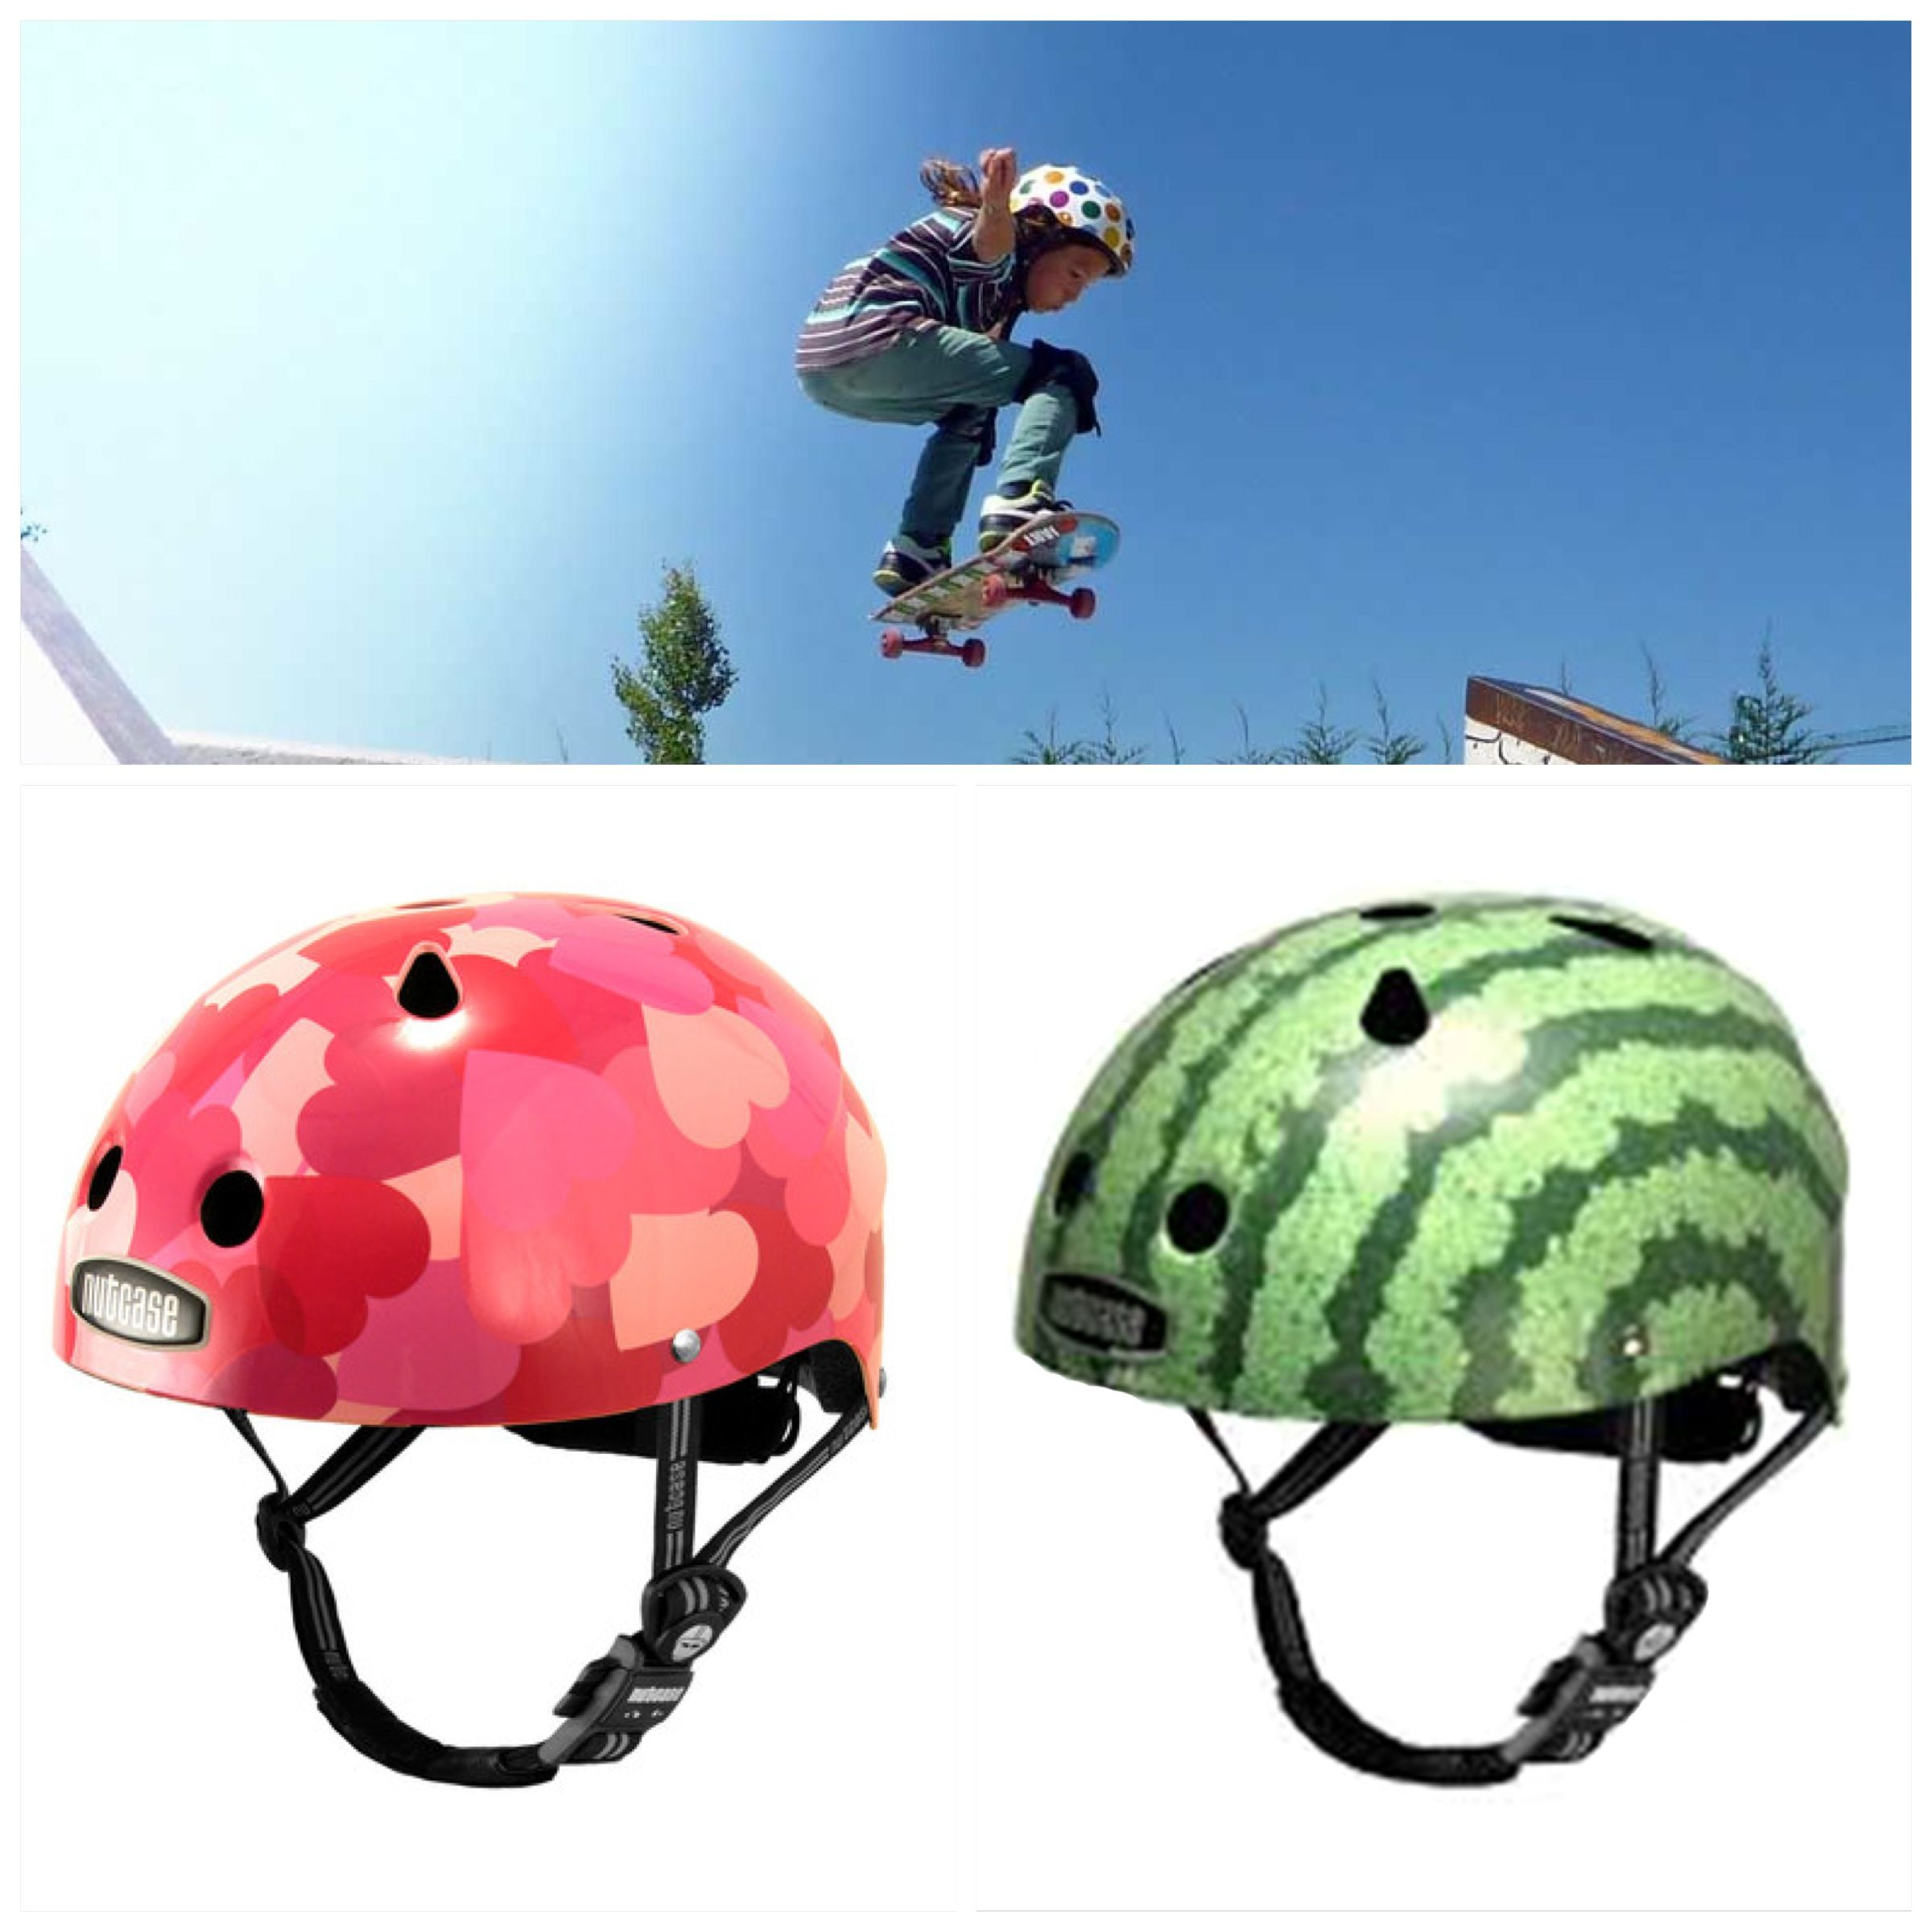 Mocka s Little Nutty Helmets are the best way to protect your child s head Available in